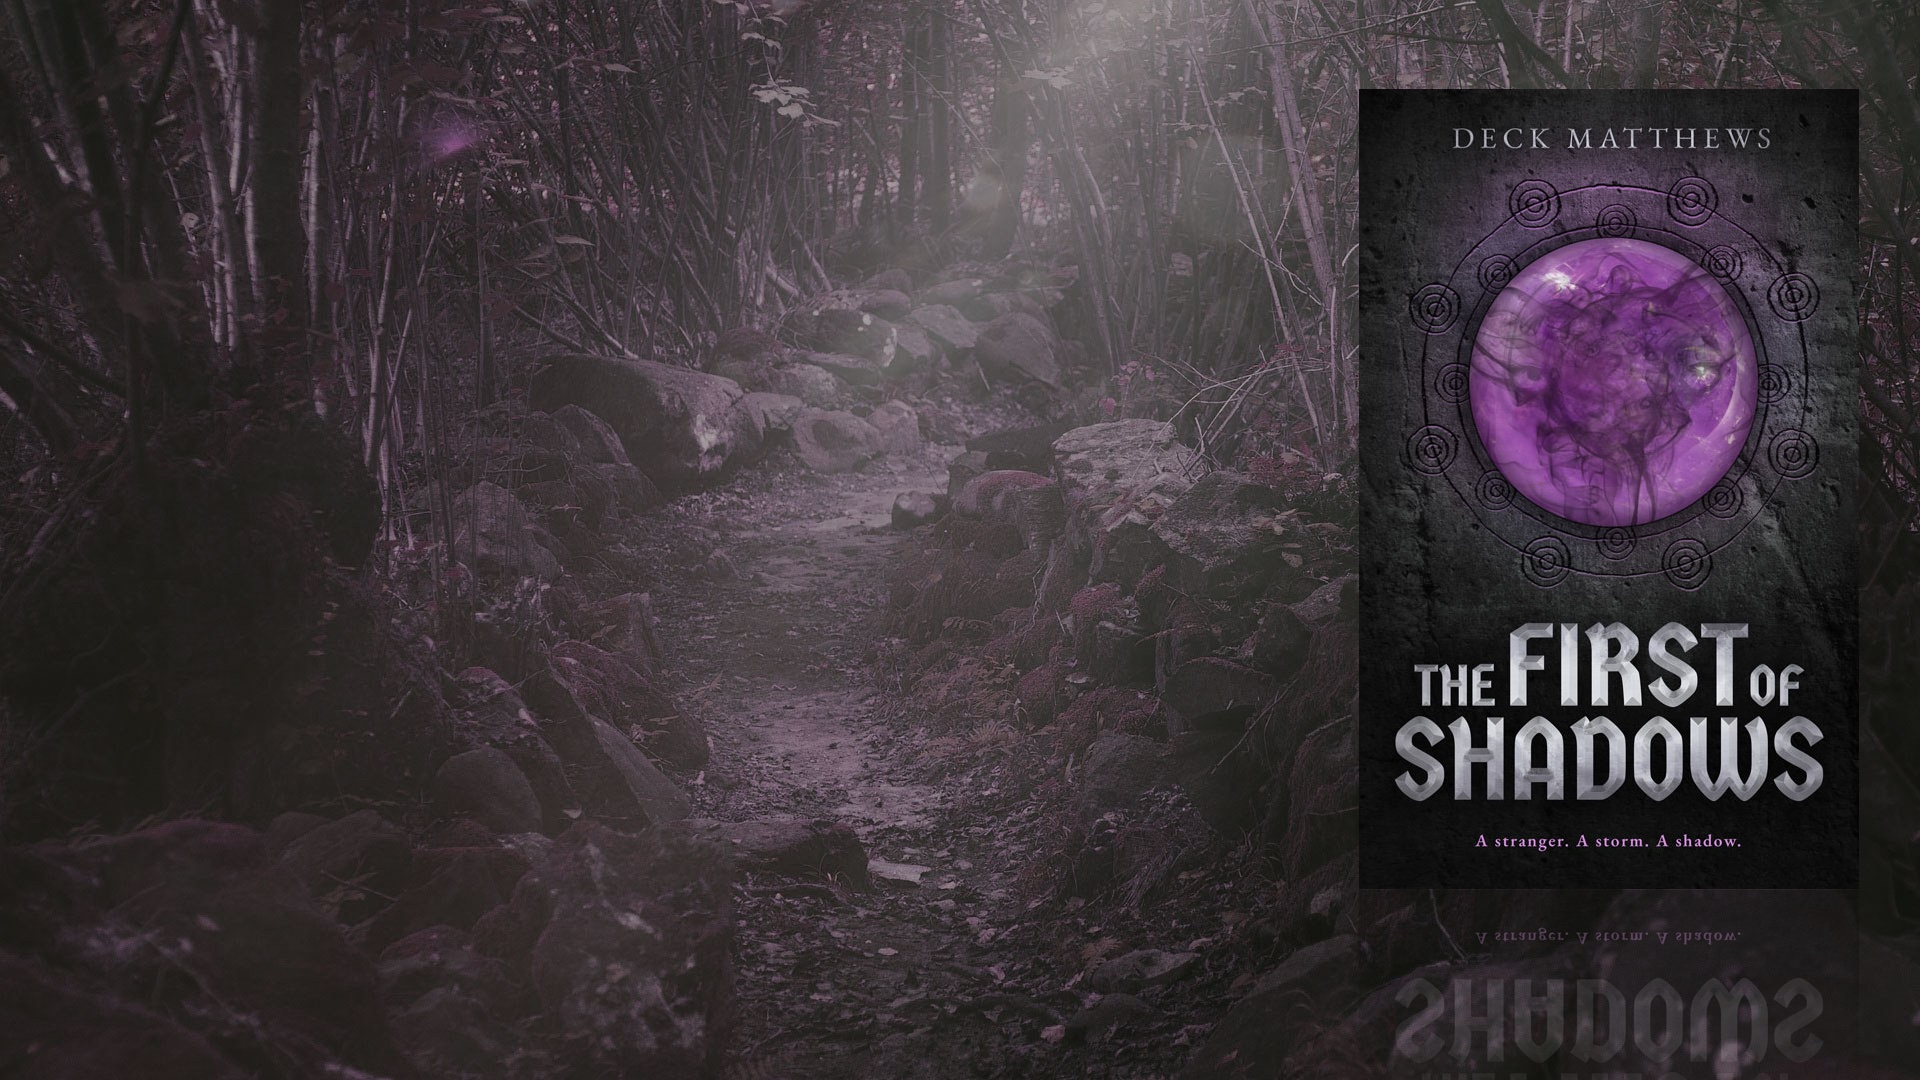 The First of Shadows - review and author interview